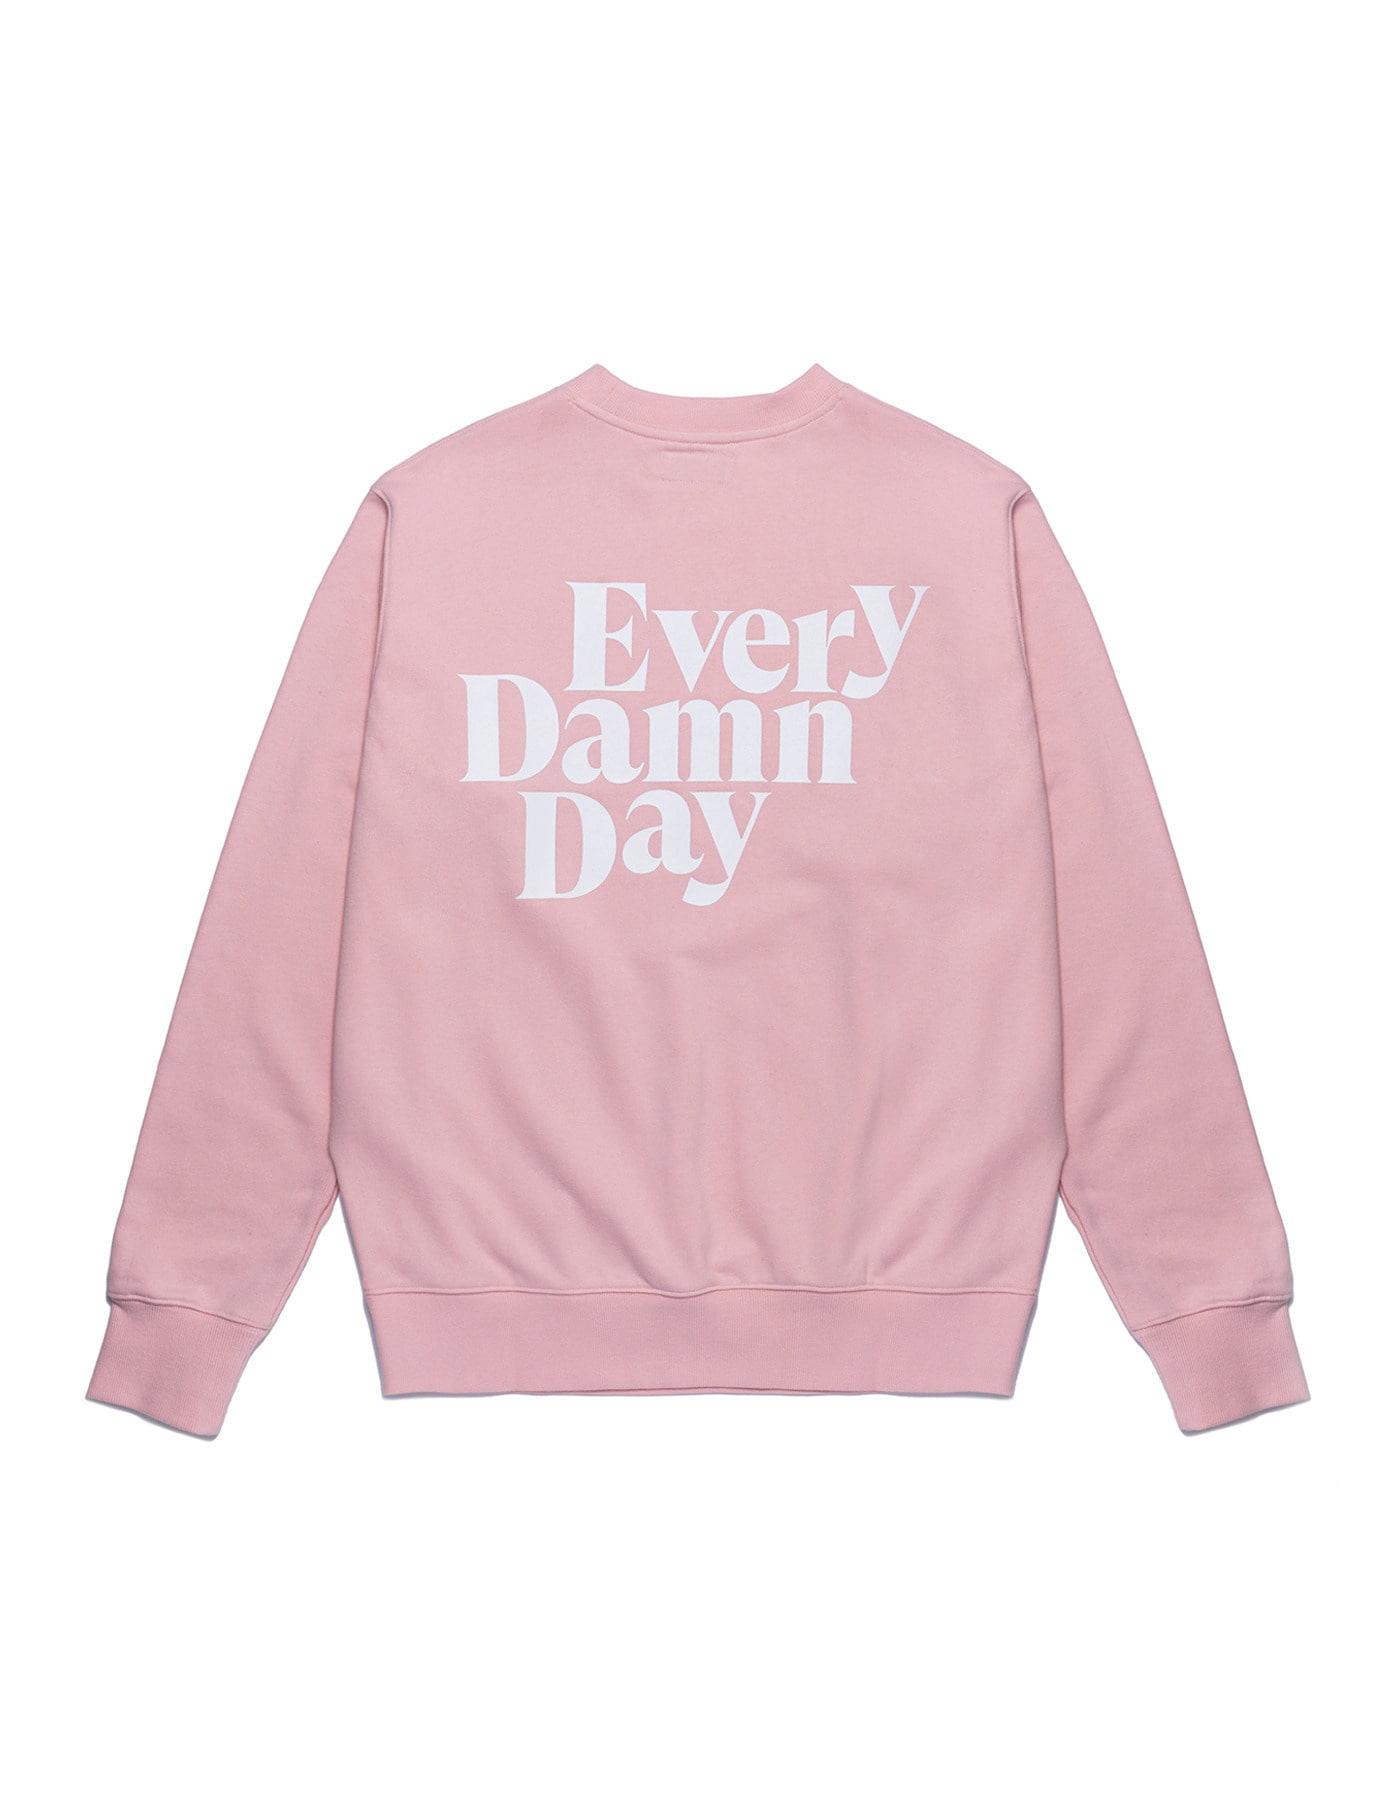 Every Damn Day Crewneck - Light Pink